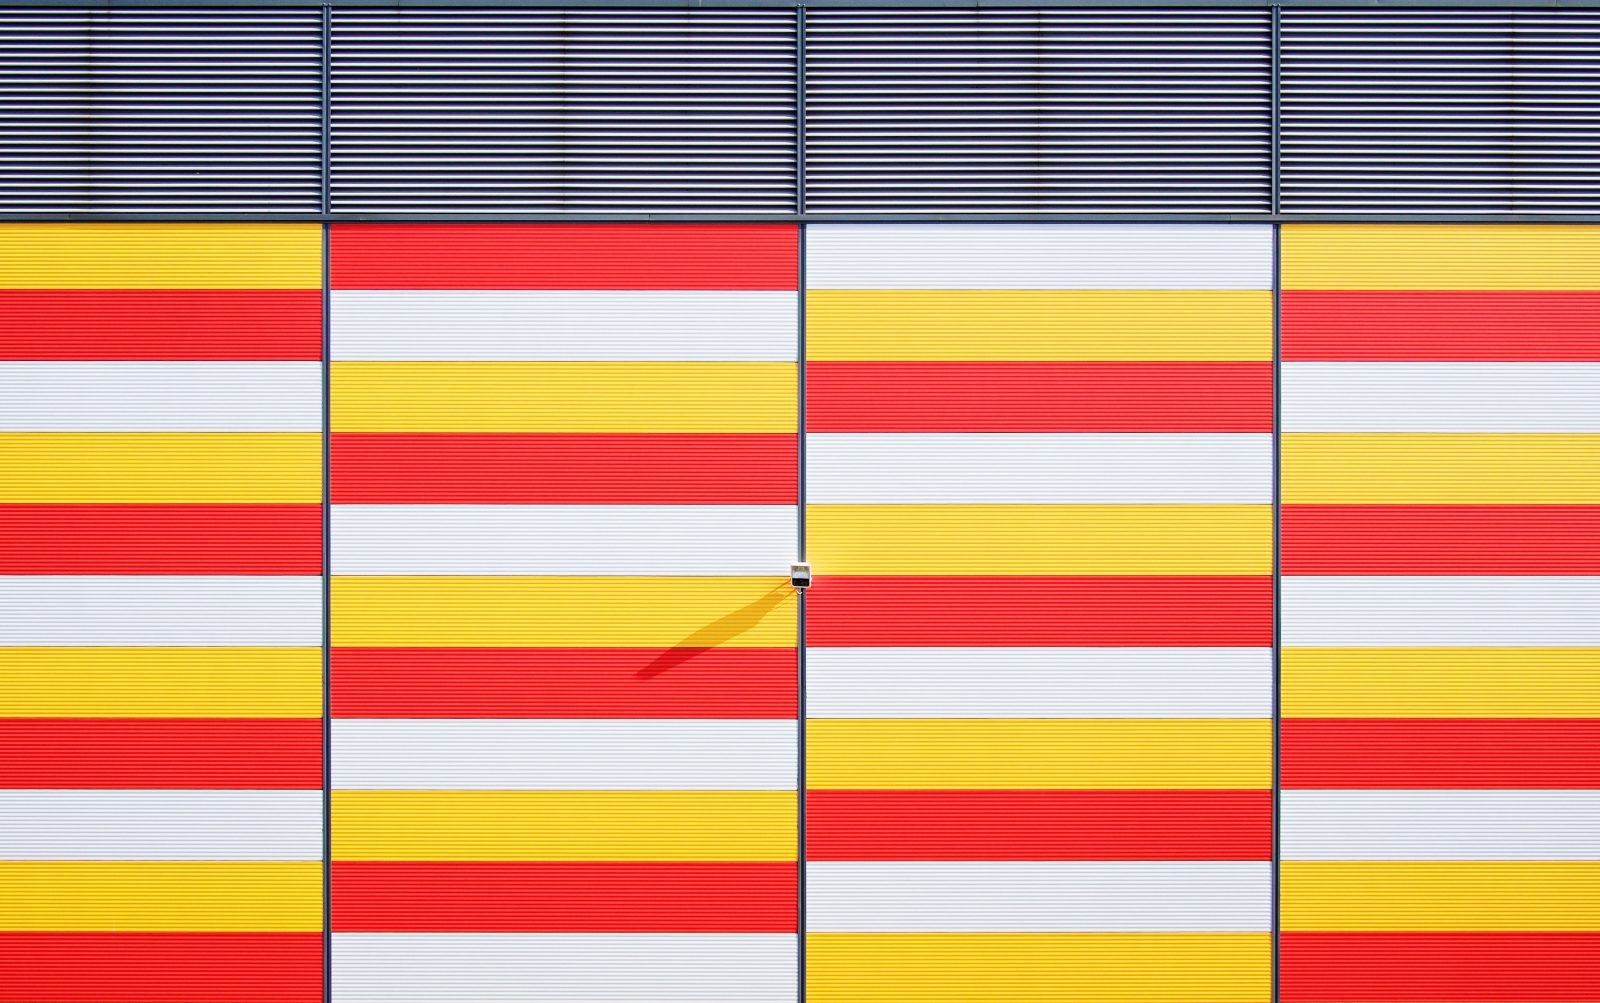 Colorful Wall - Free Stock Photos | Life of Pix